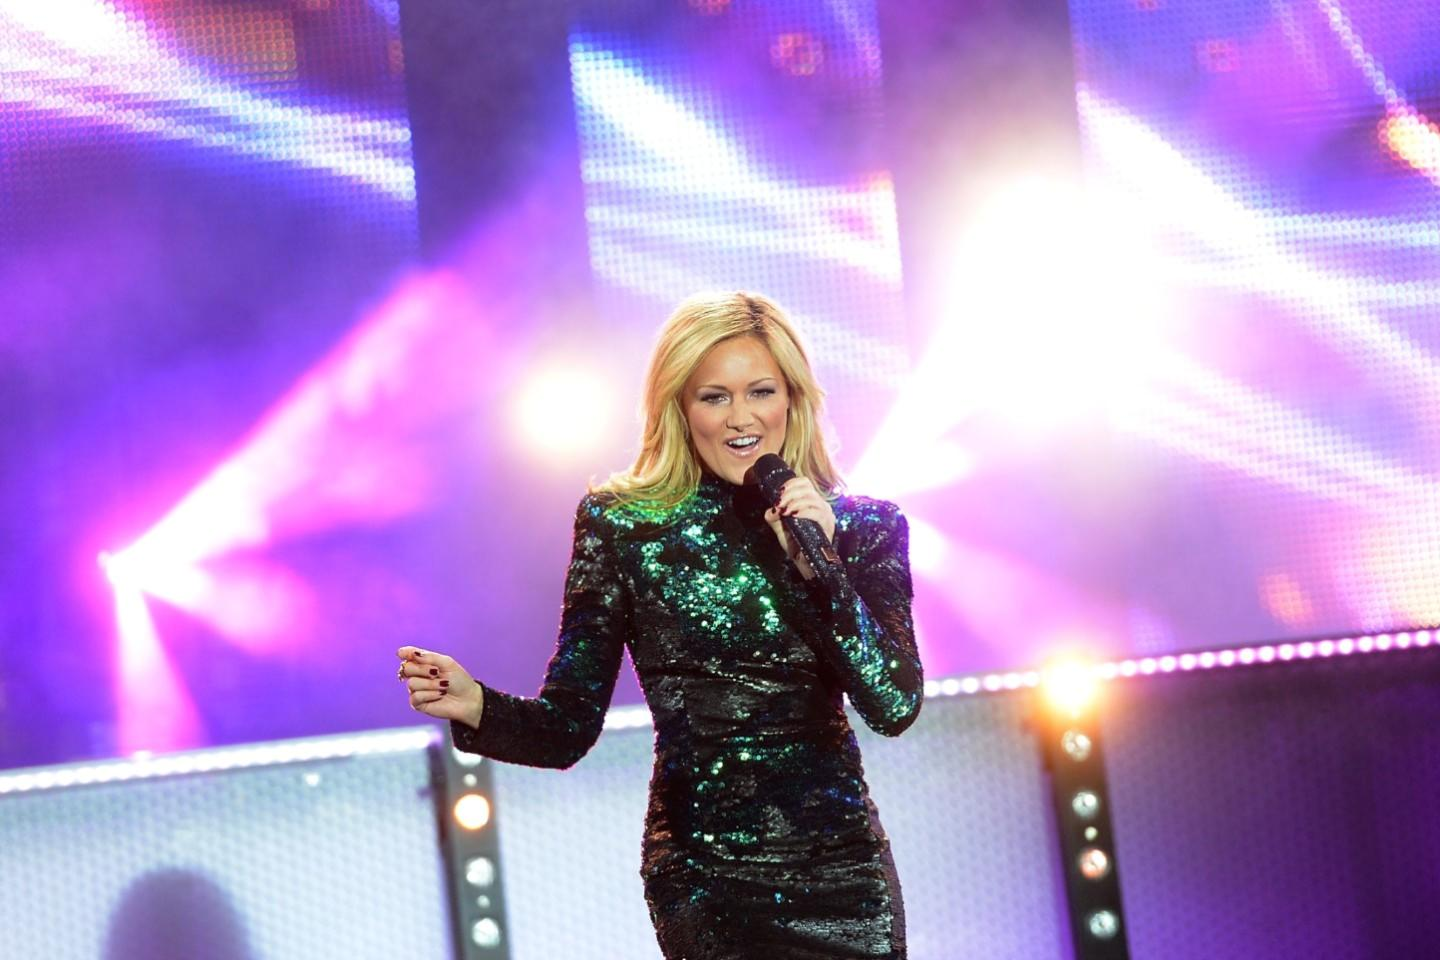 Helene Fischer Tickets   Helene Fischer Tour Dates 2018 and Concert     Helene Fischer Tickets